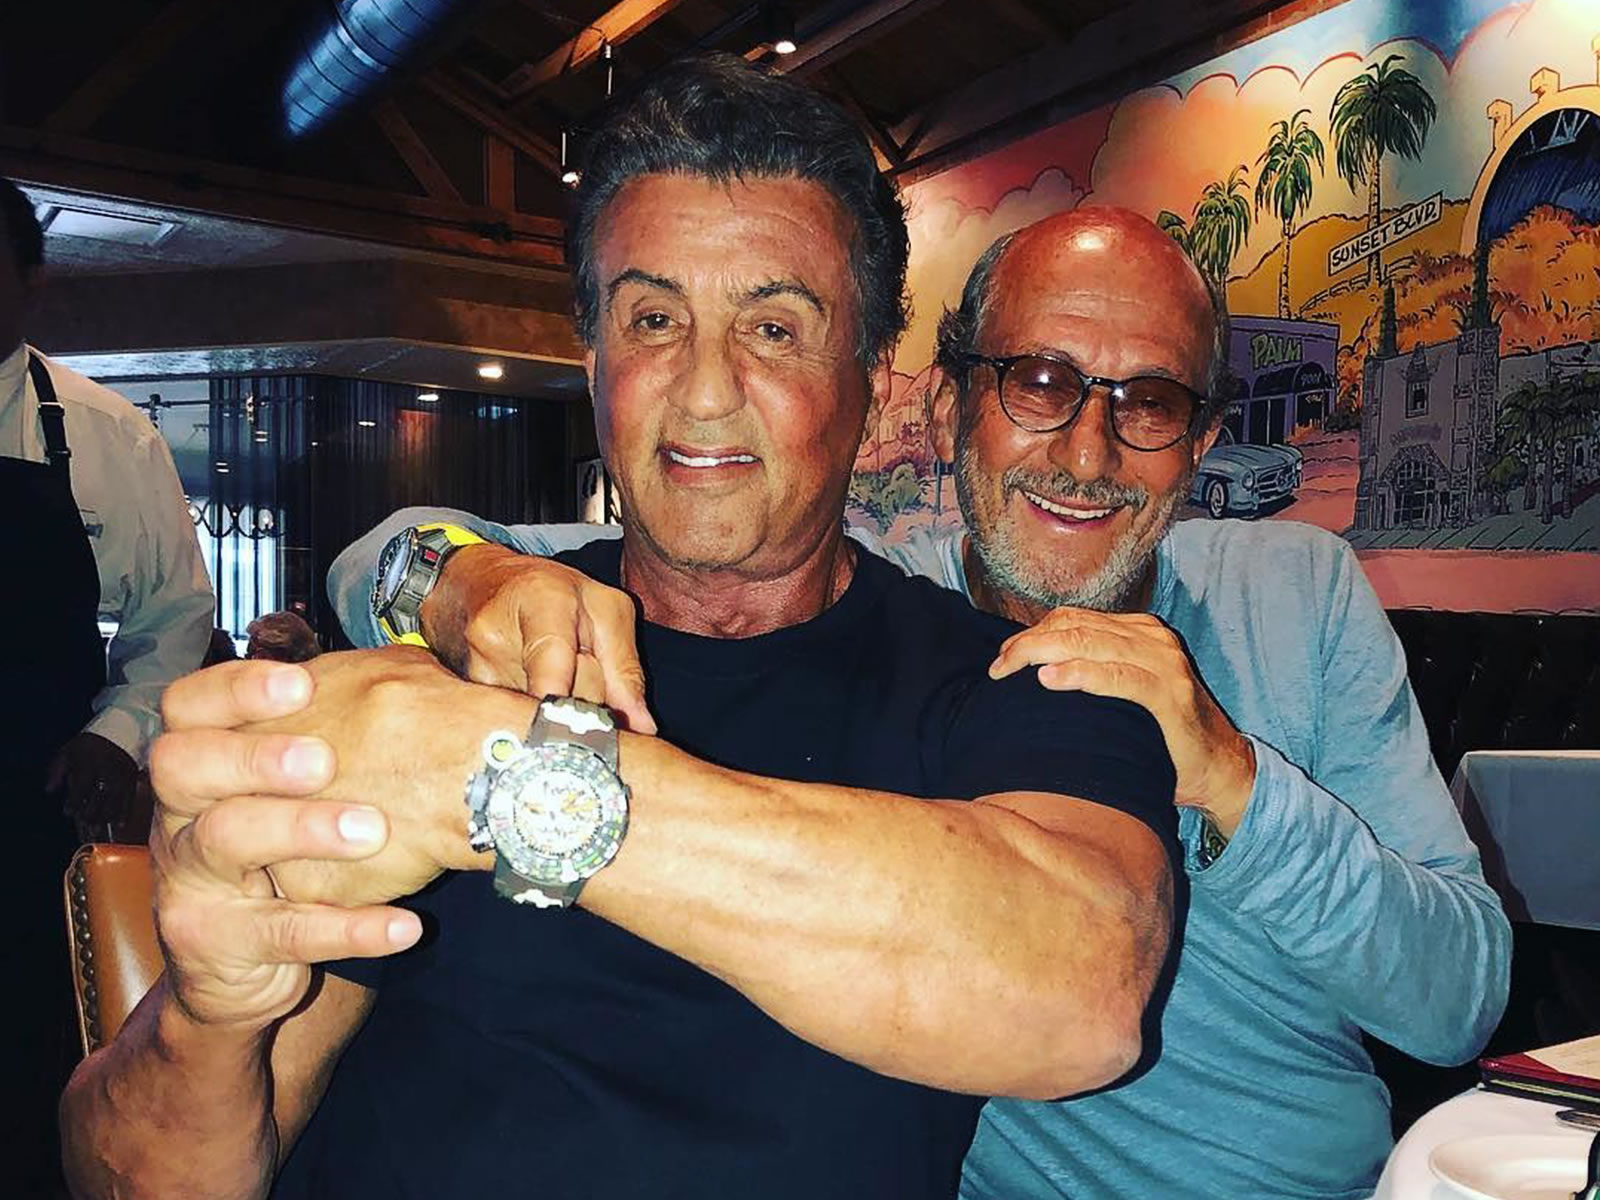 richard-mille-rm-25-01-tourbillon-adventure-sylvester-stallone-11-.jpg